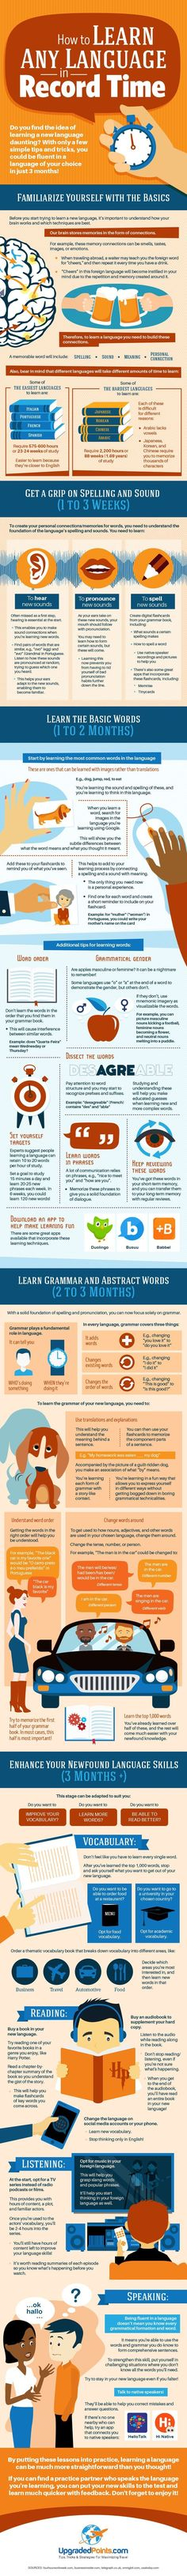 How To Learn Any Language In Record Time Infographic - http://elearninginfographics.com/learn-any-language-in-record-time-infographic/ #spanishinfographic #easyfrenchlanguage